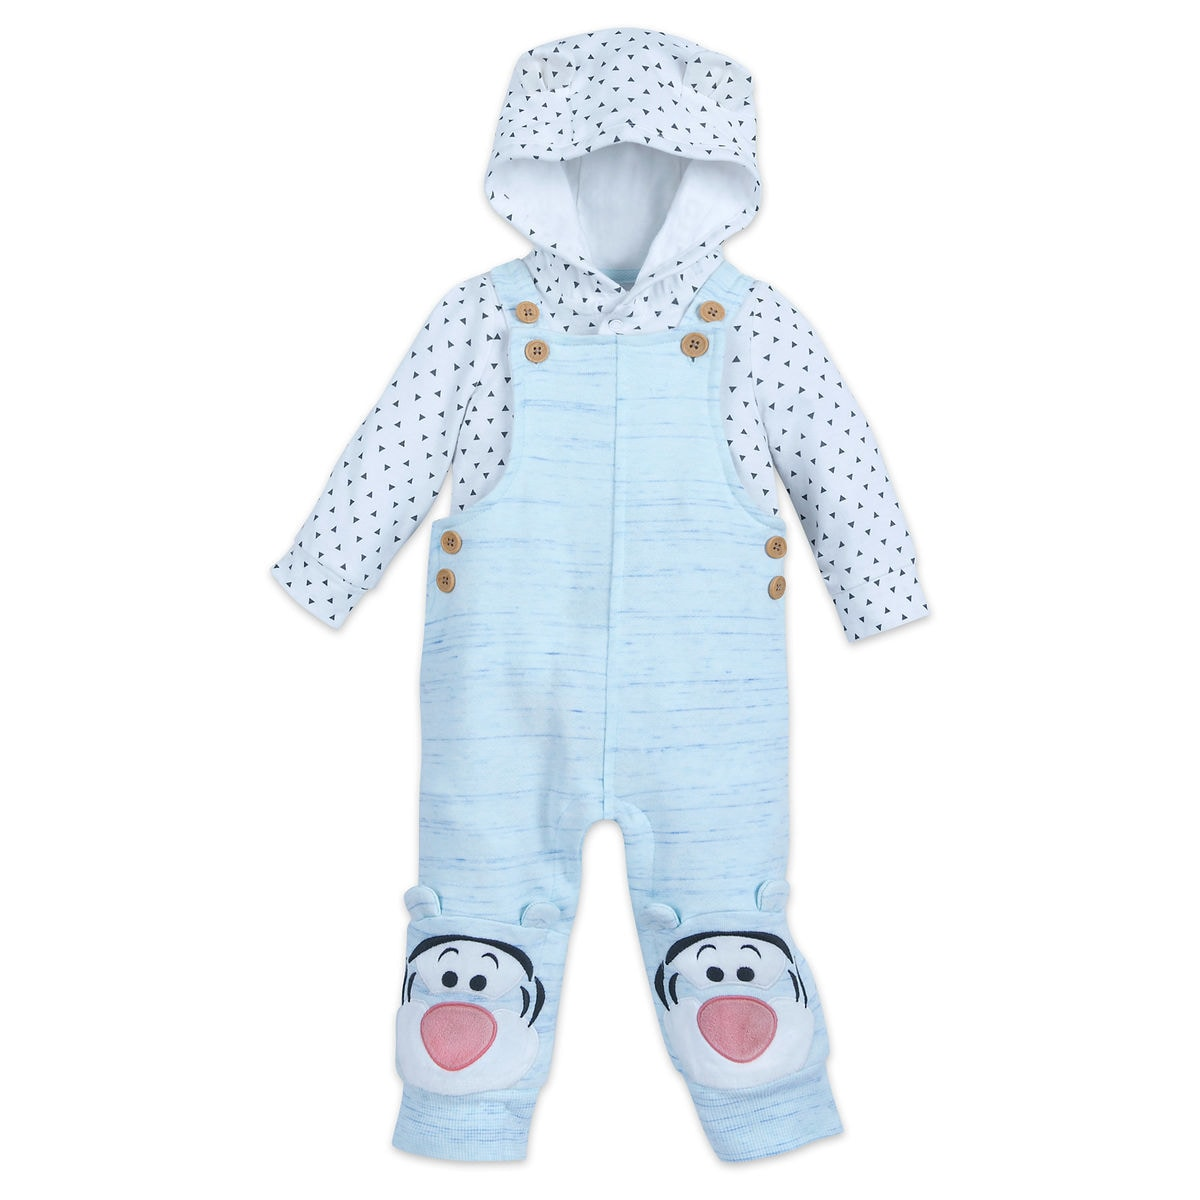 a0c0575fce67 Tigger Dungaree Set for Baby